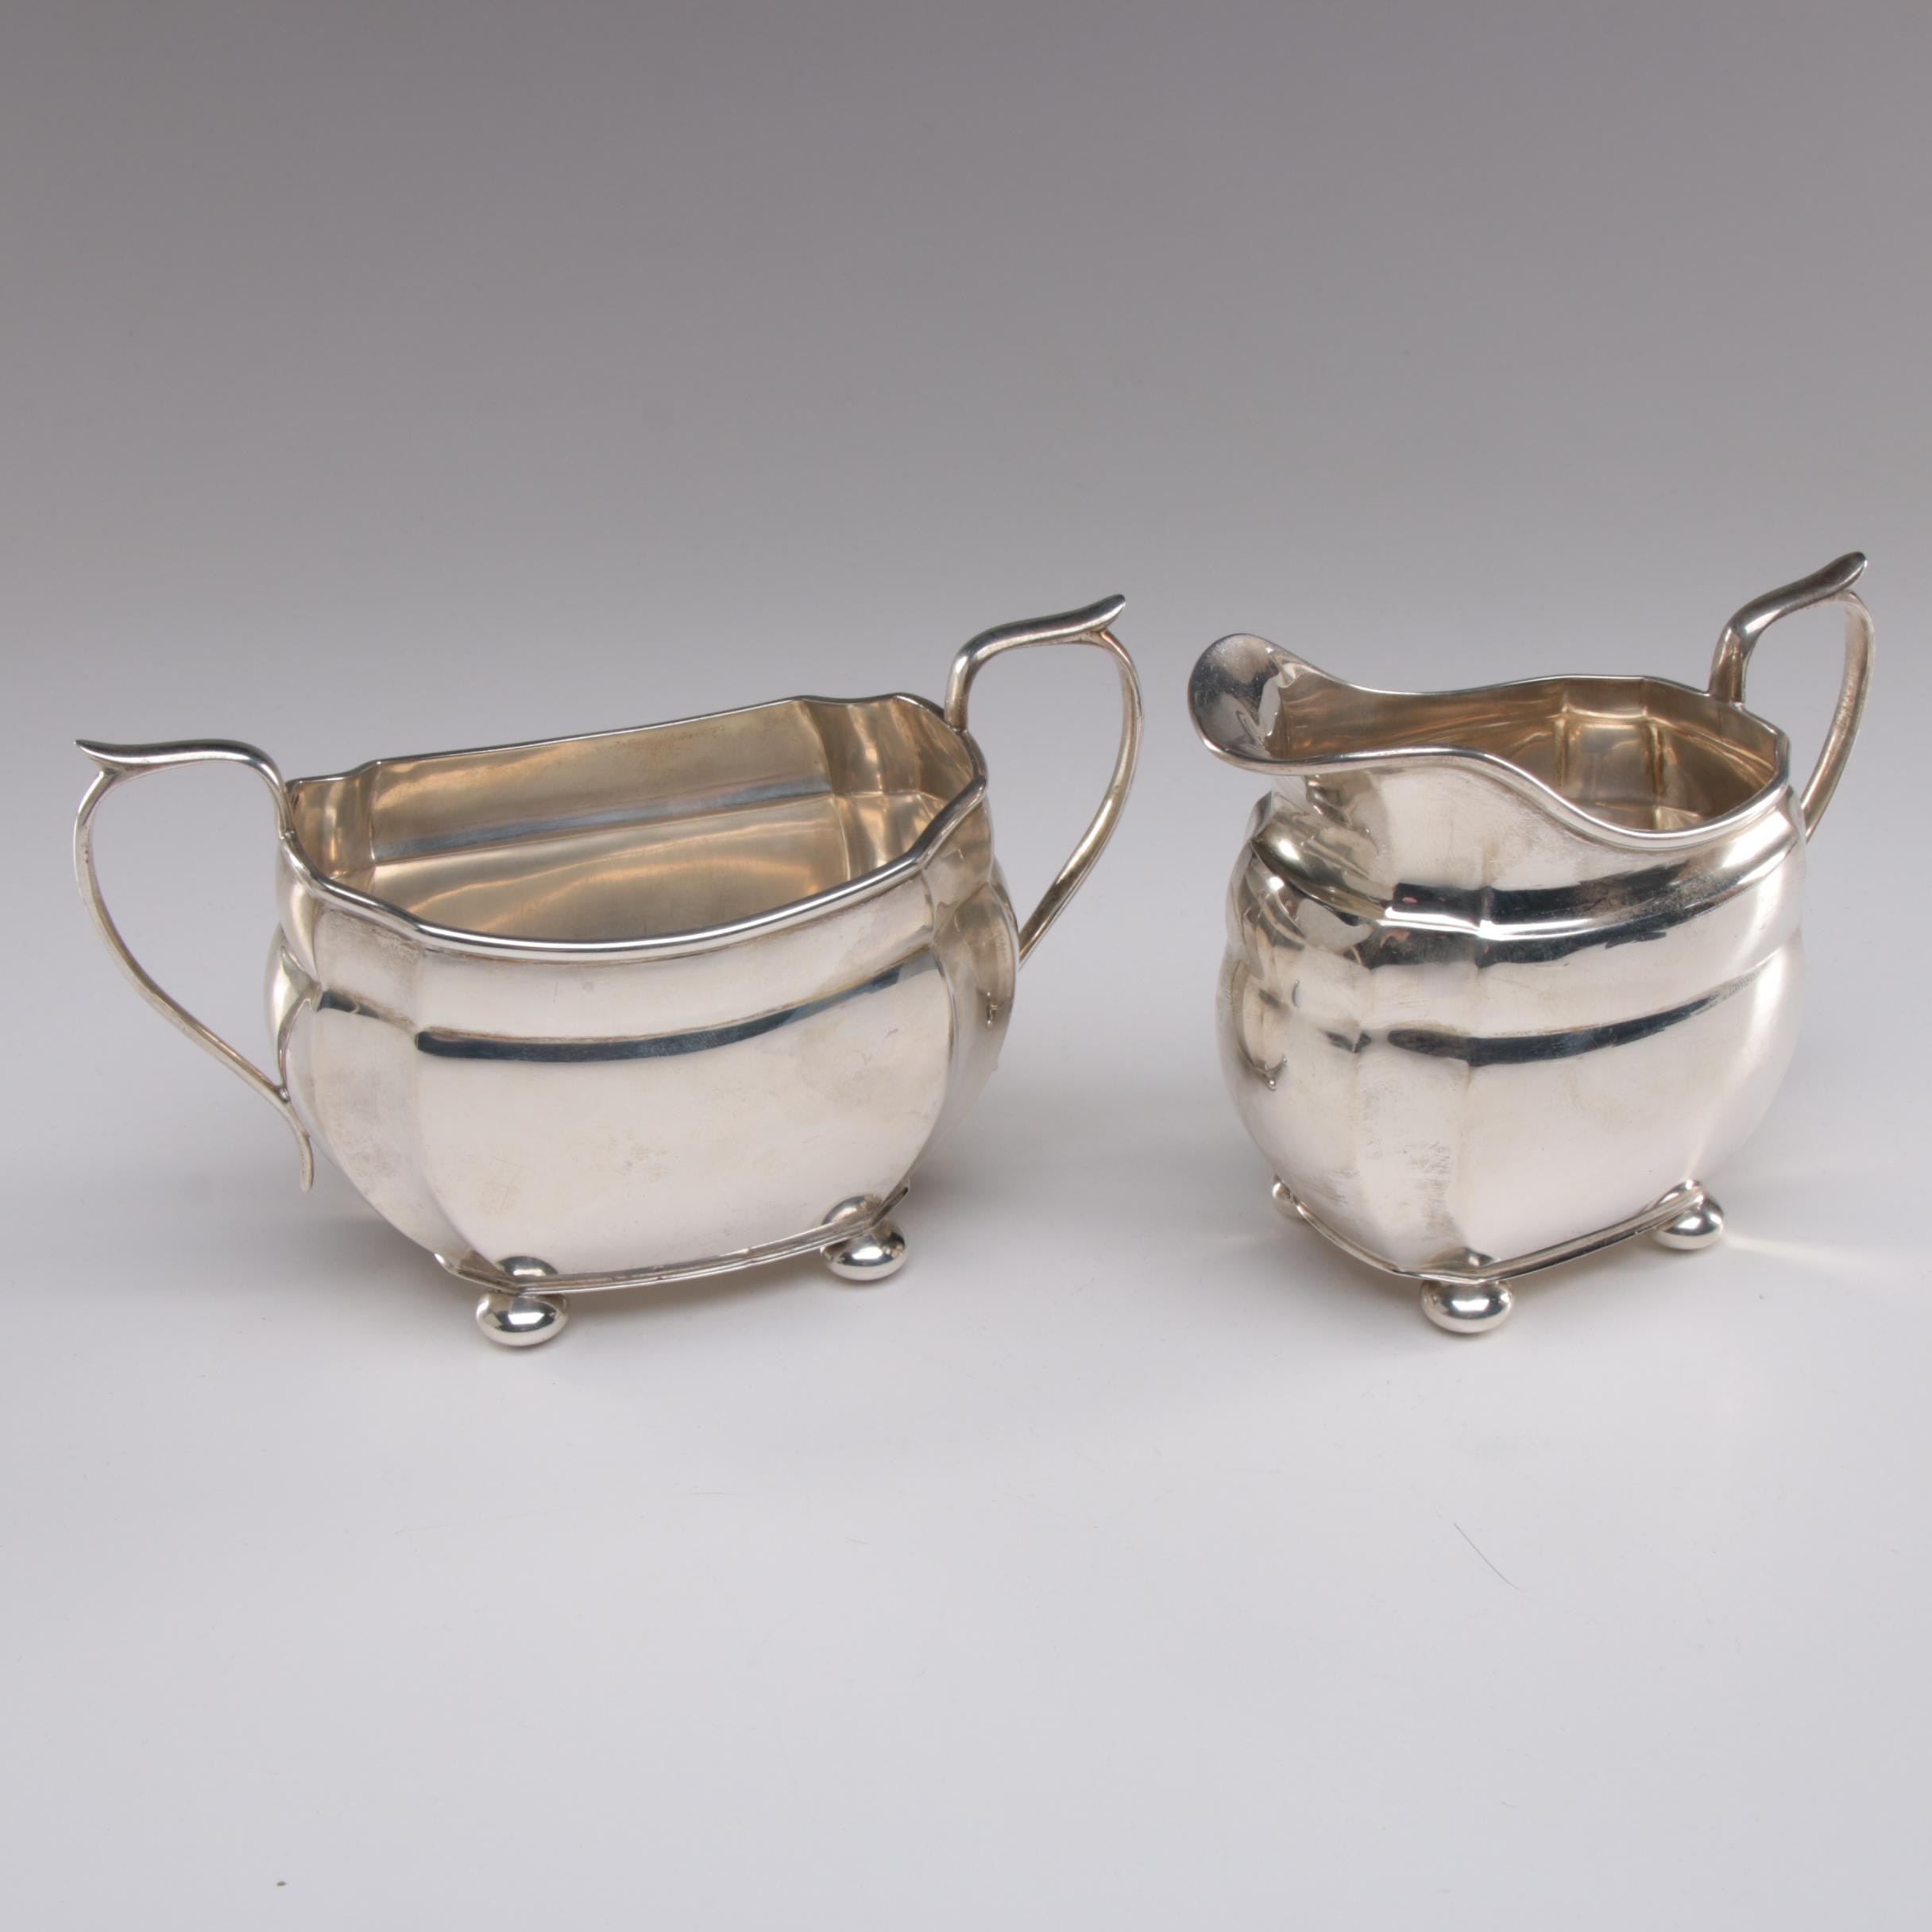 S. Blackensee & Sons Sterling Creamer and Sugar Bowl, 1930s